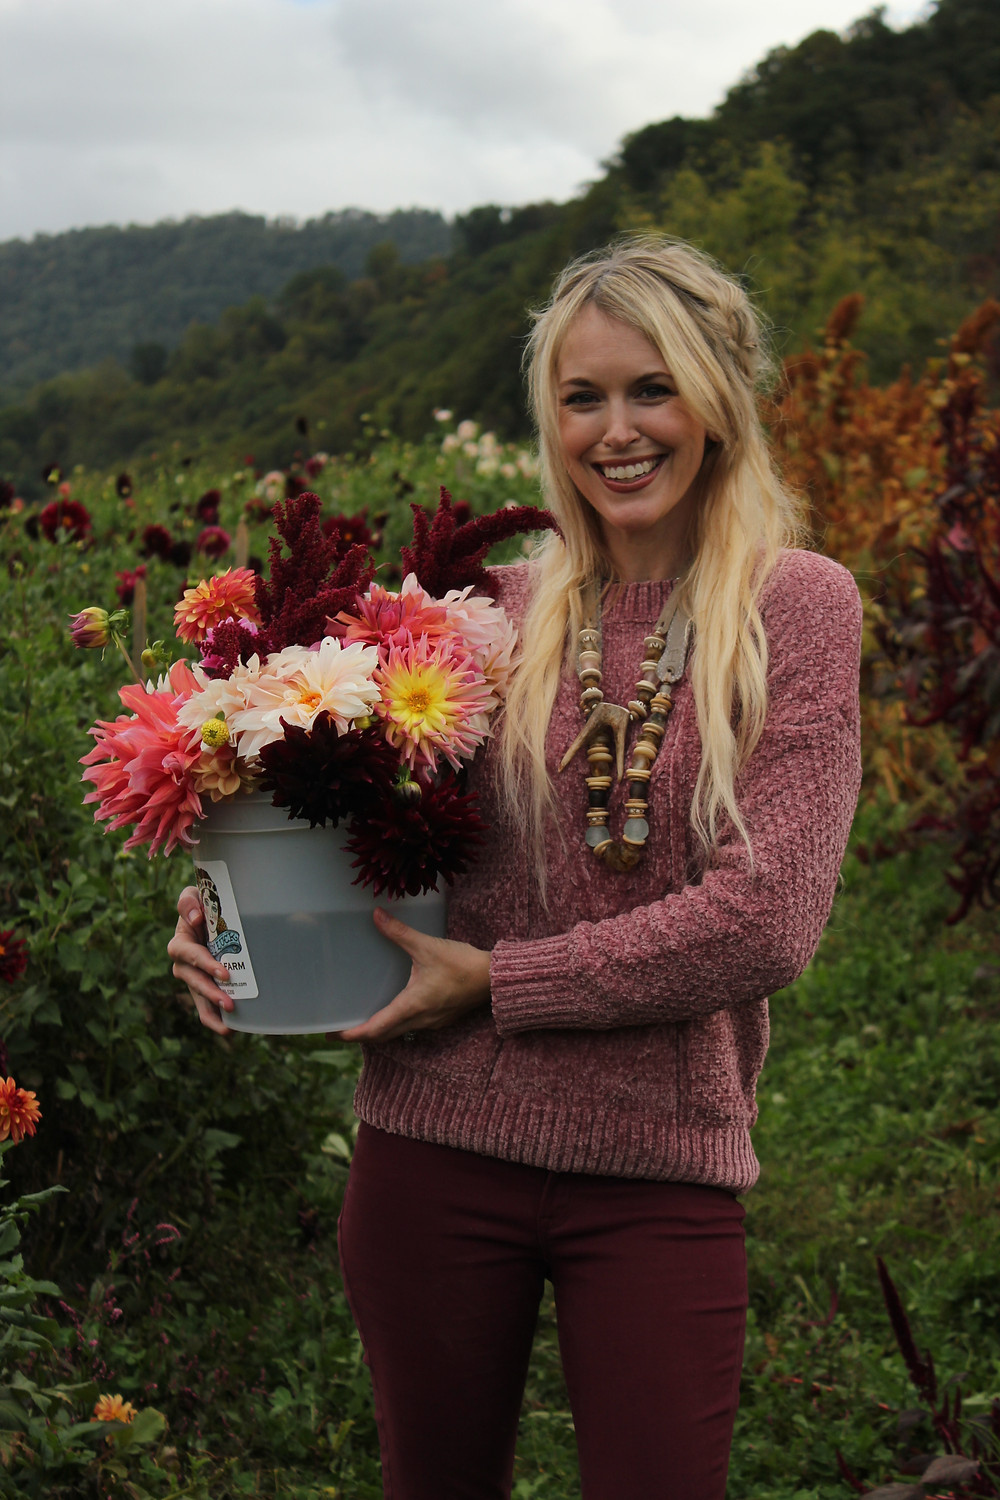 Brooke holds a bucket full of pink and red flowers at Lady Luck Flower Farm in Asheville, NC.